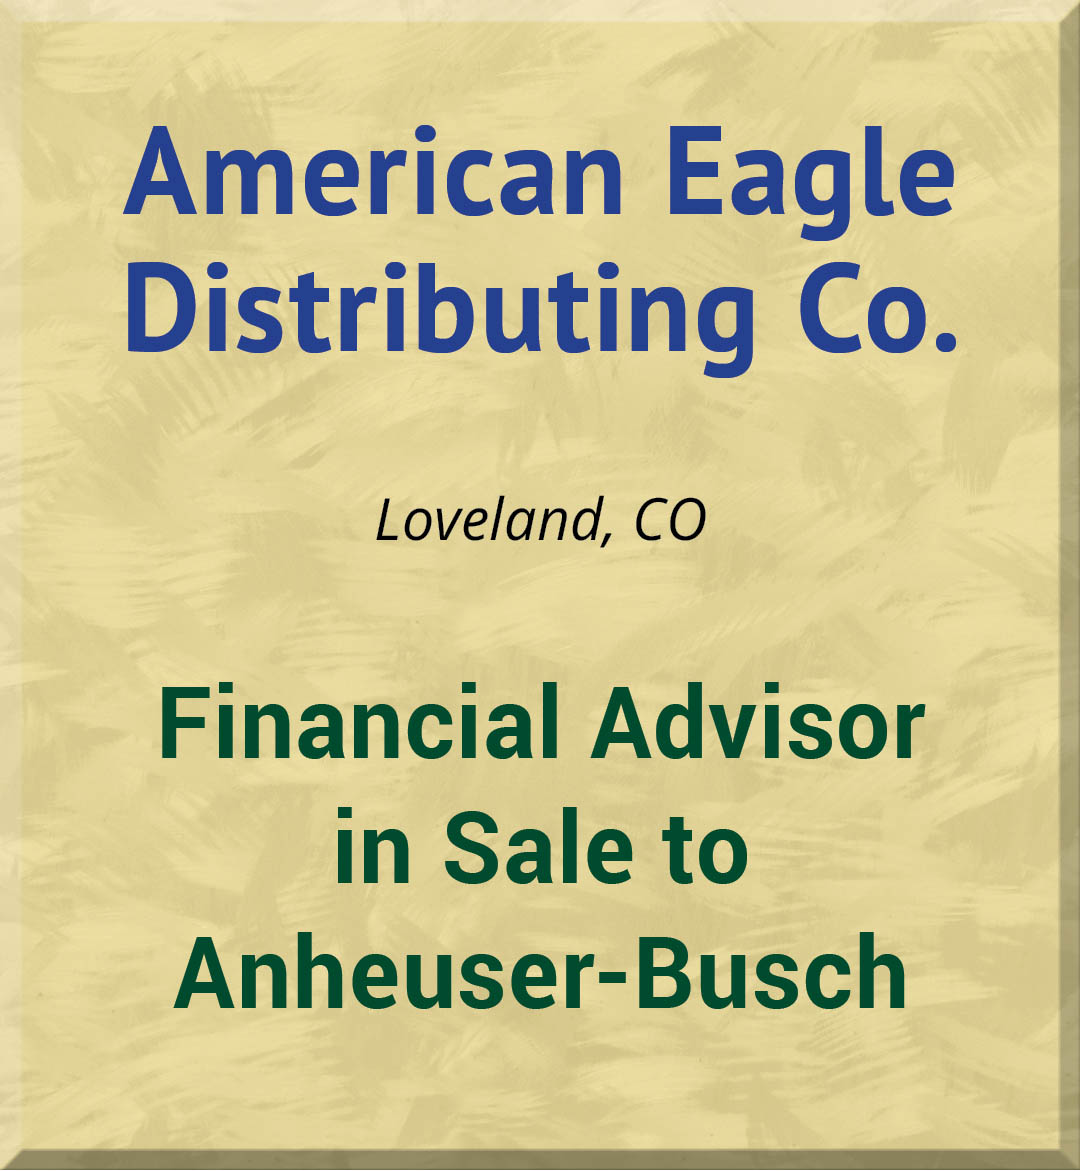 American Eagle Distributing Co.